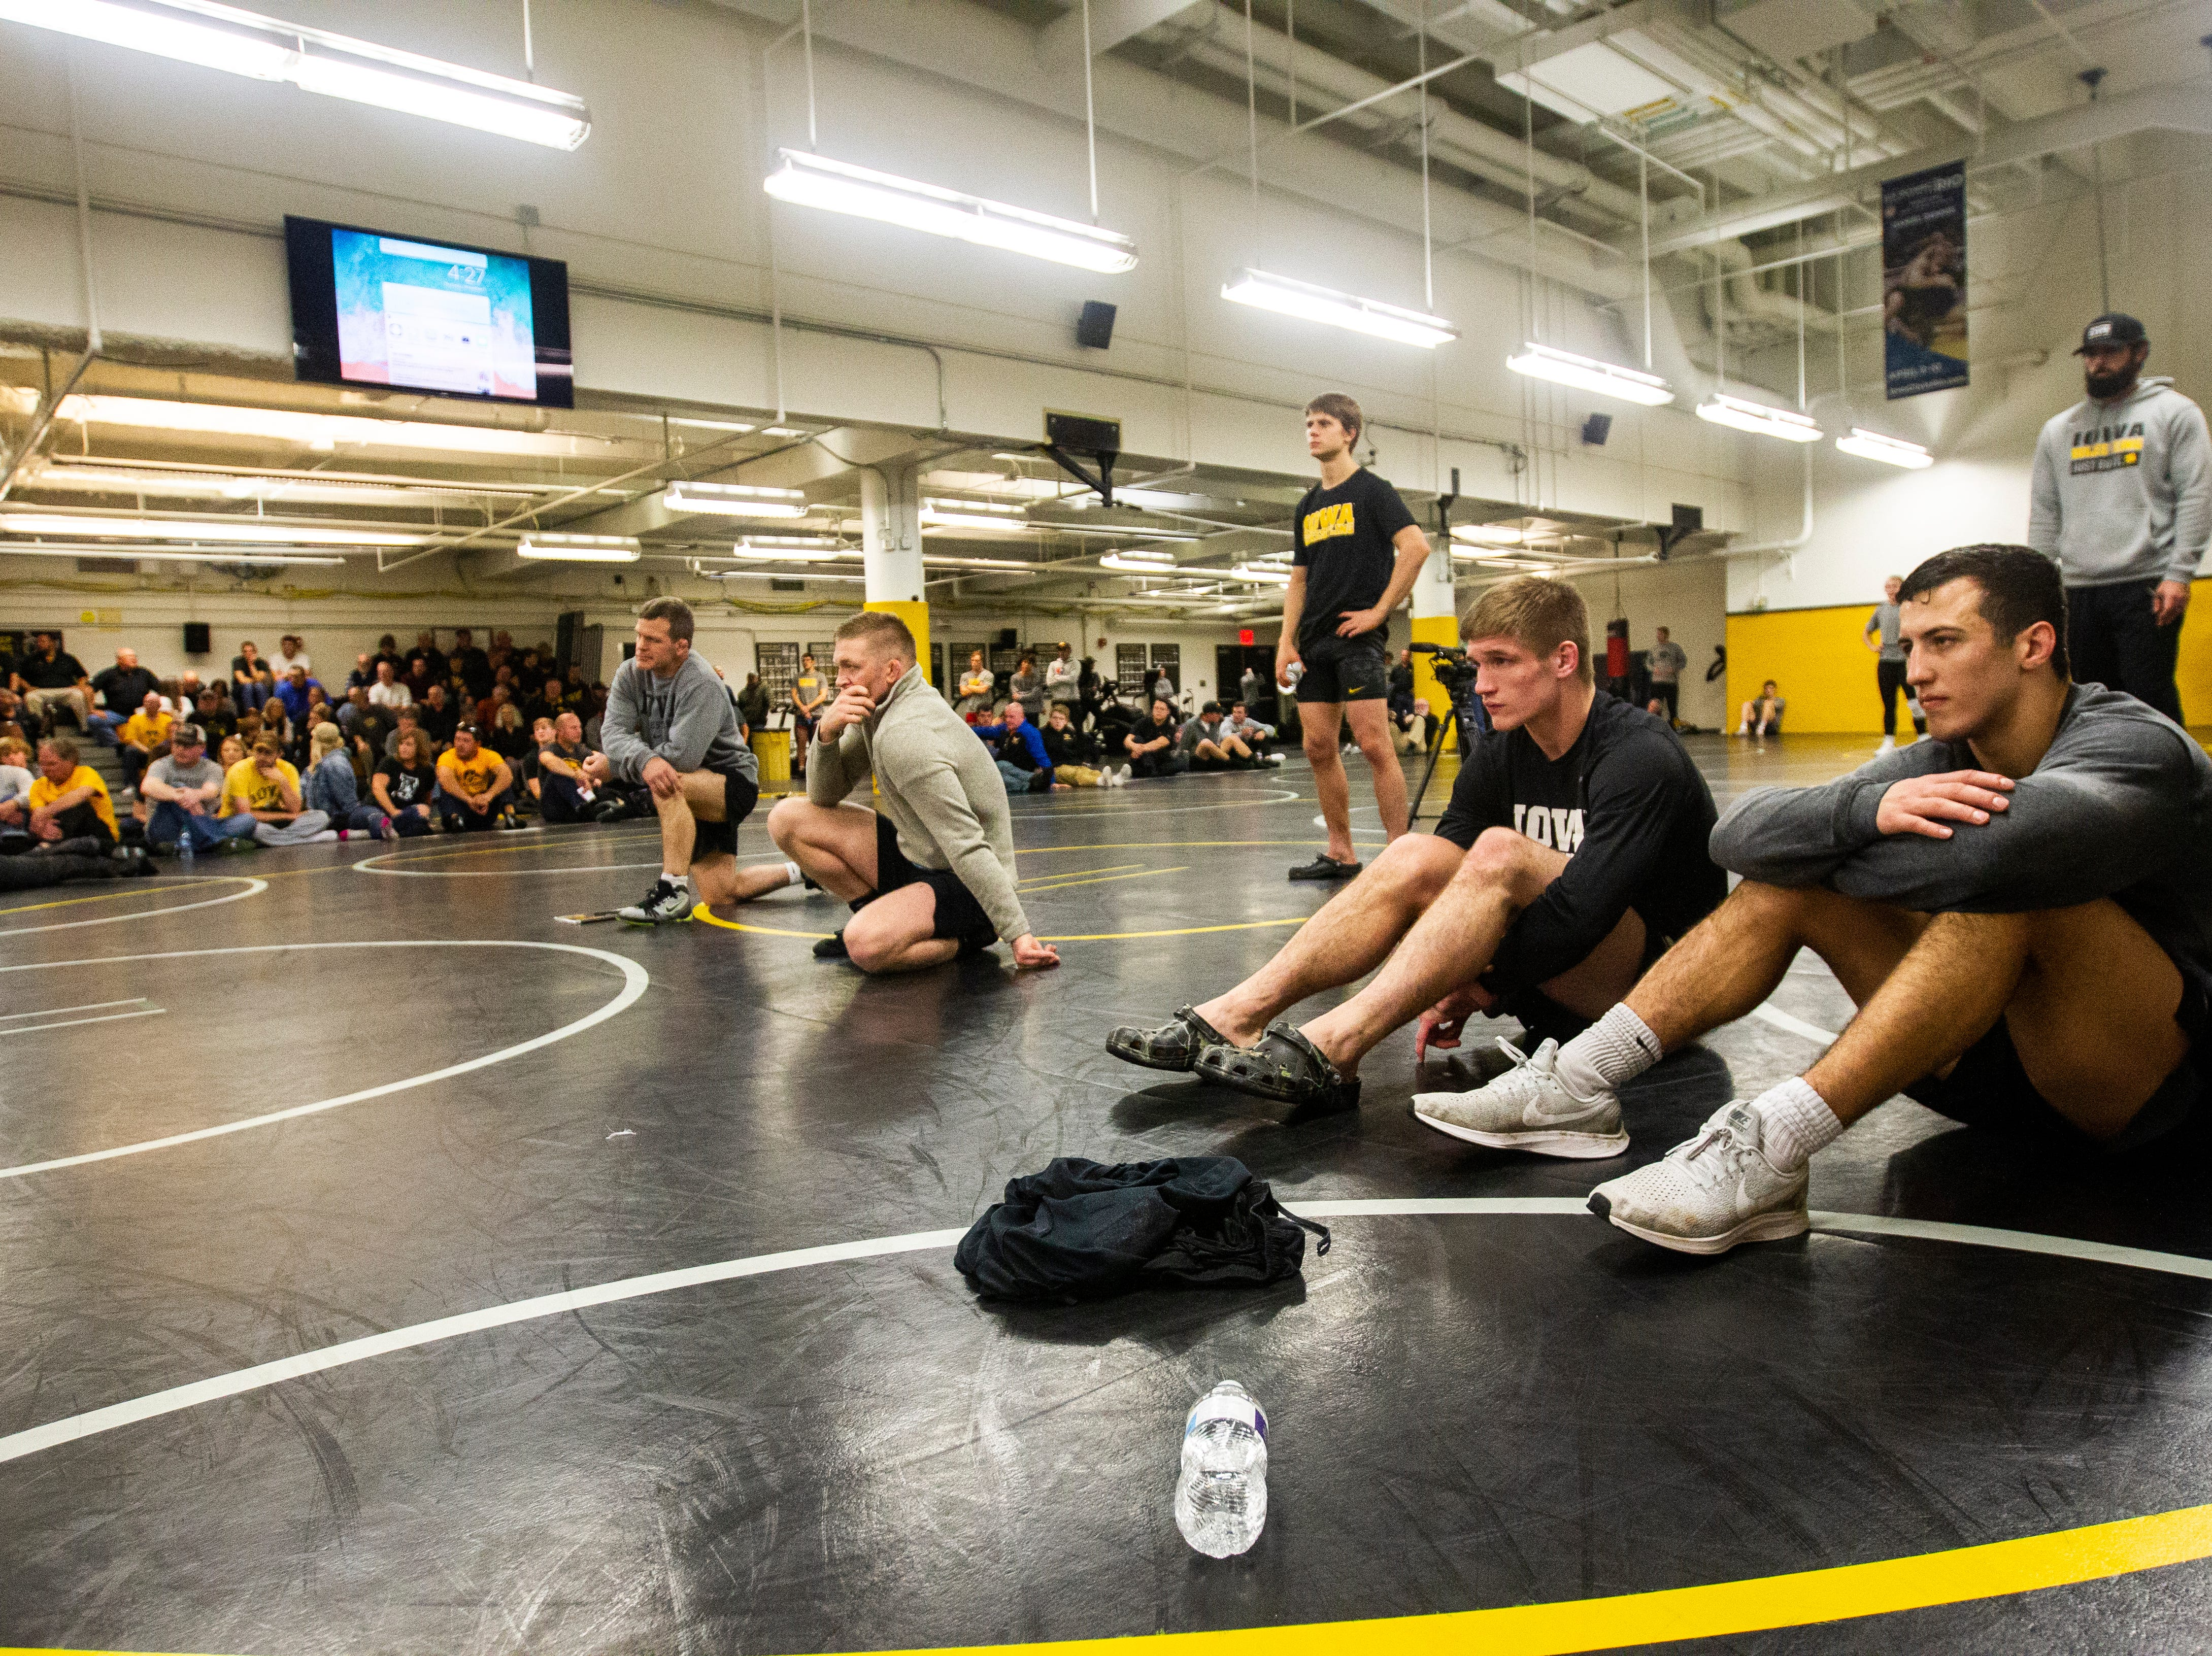 Iowa's Michael Kemerer (far right) watches a match during the wrestle-offs on Thursday, Nov. 1, 2018, inside the Dan Gable Wrestling Complex at Carver-Hawkeye Arena in Iowa City.